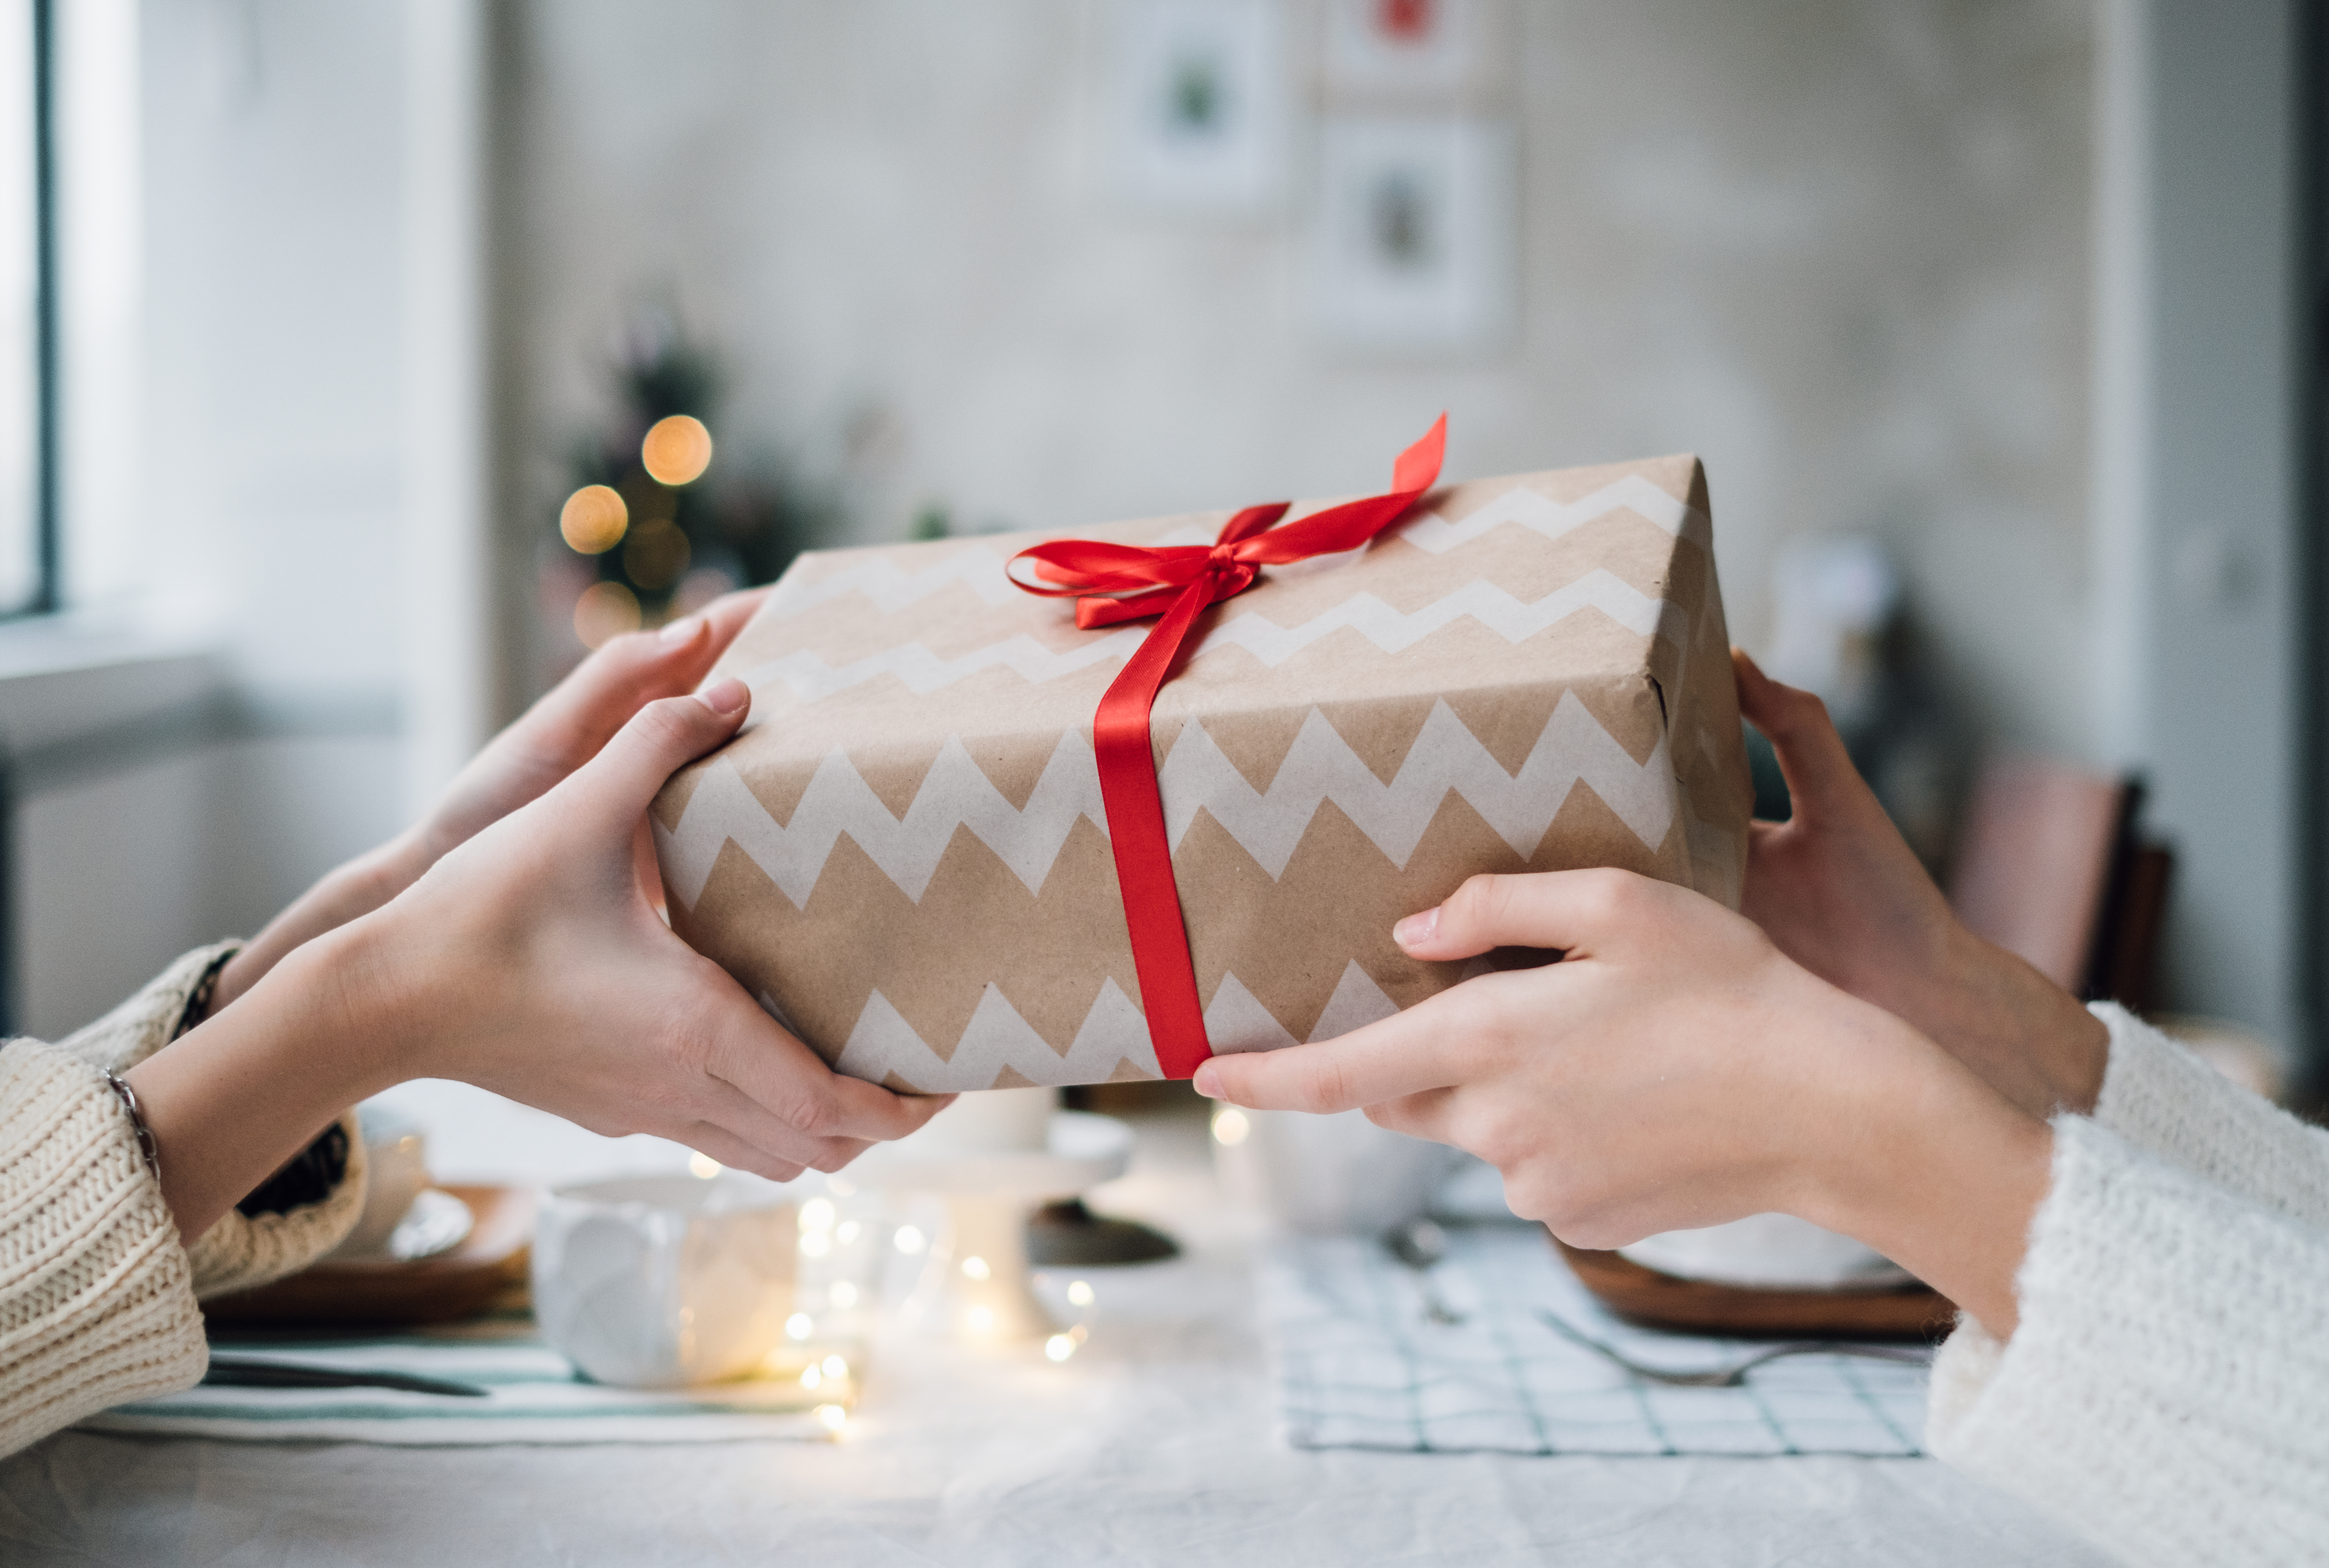 The Almost-Free Gift I Made for Everyone When We Were Broke | Kitchn